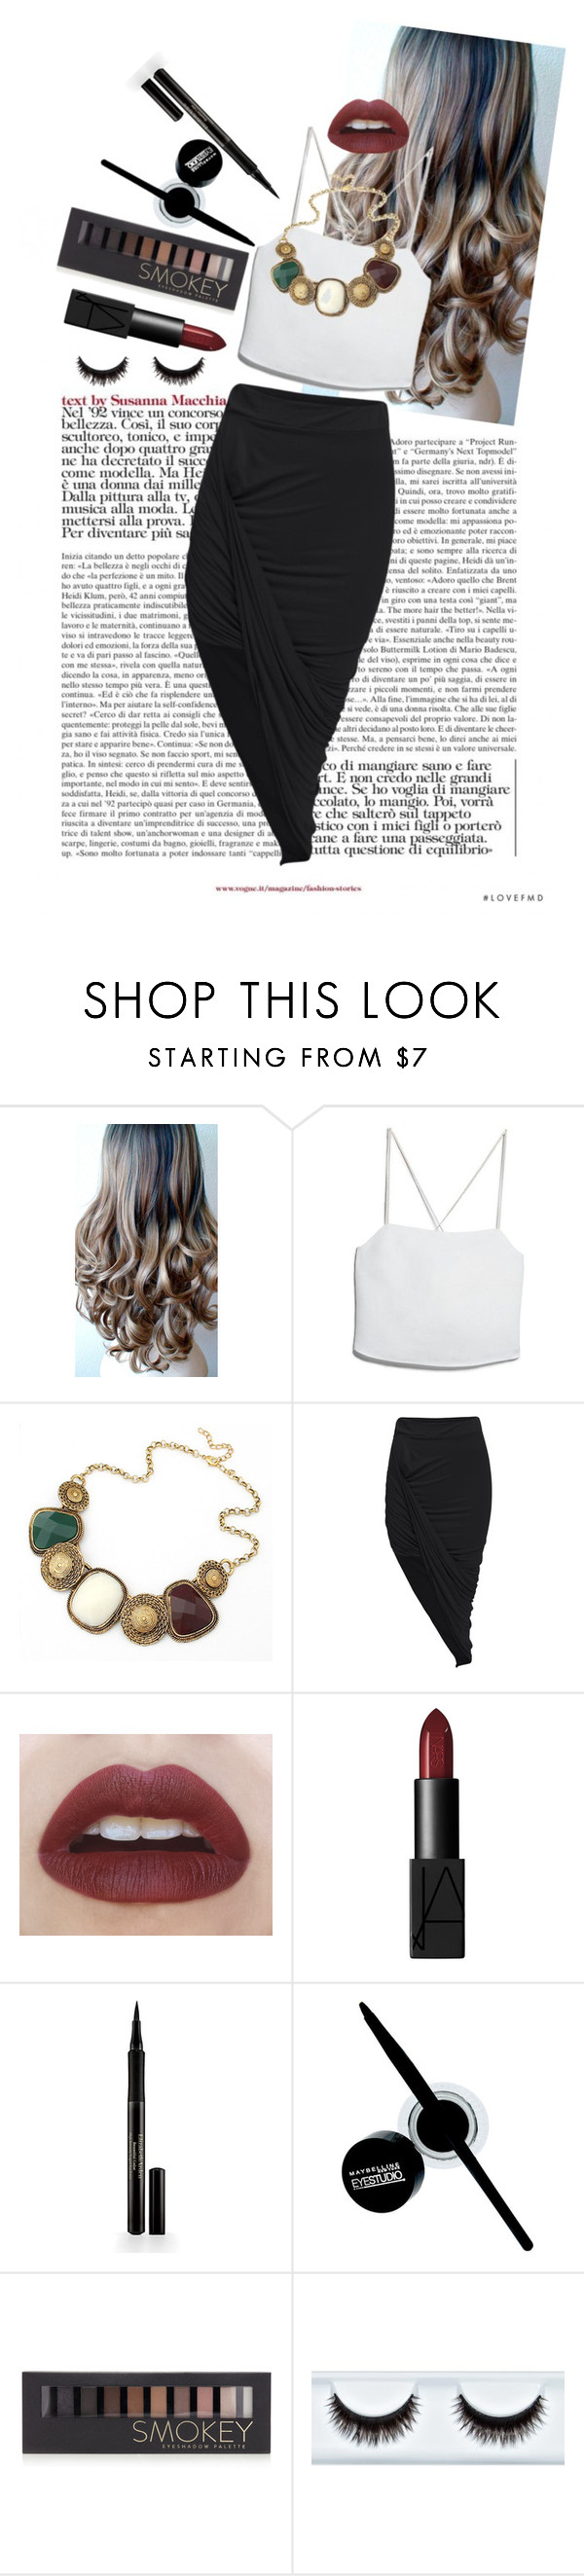 """""""Color"""" by baileybear783 ❤ liked on Polyvore featuring MANGO, Haze, NARS Cosmetics, Elizabeth Arden, Maybelline and Forever 21"""